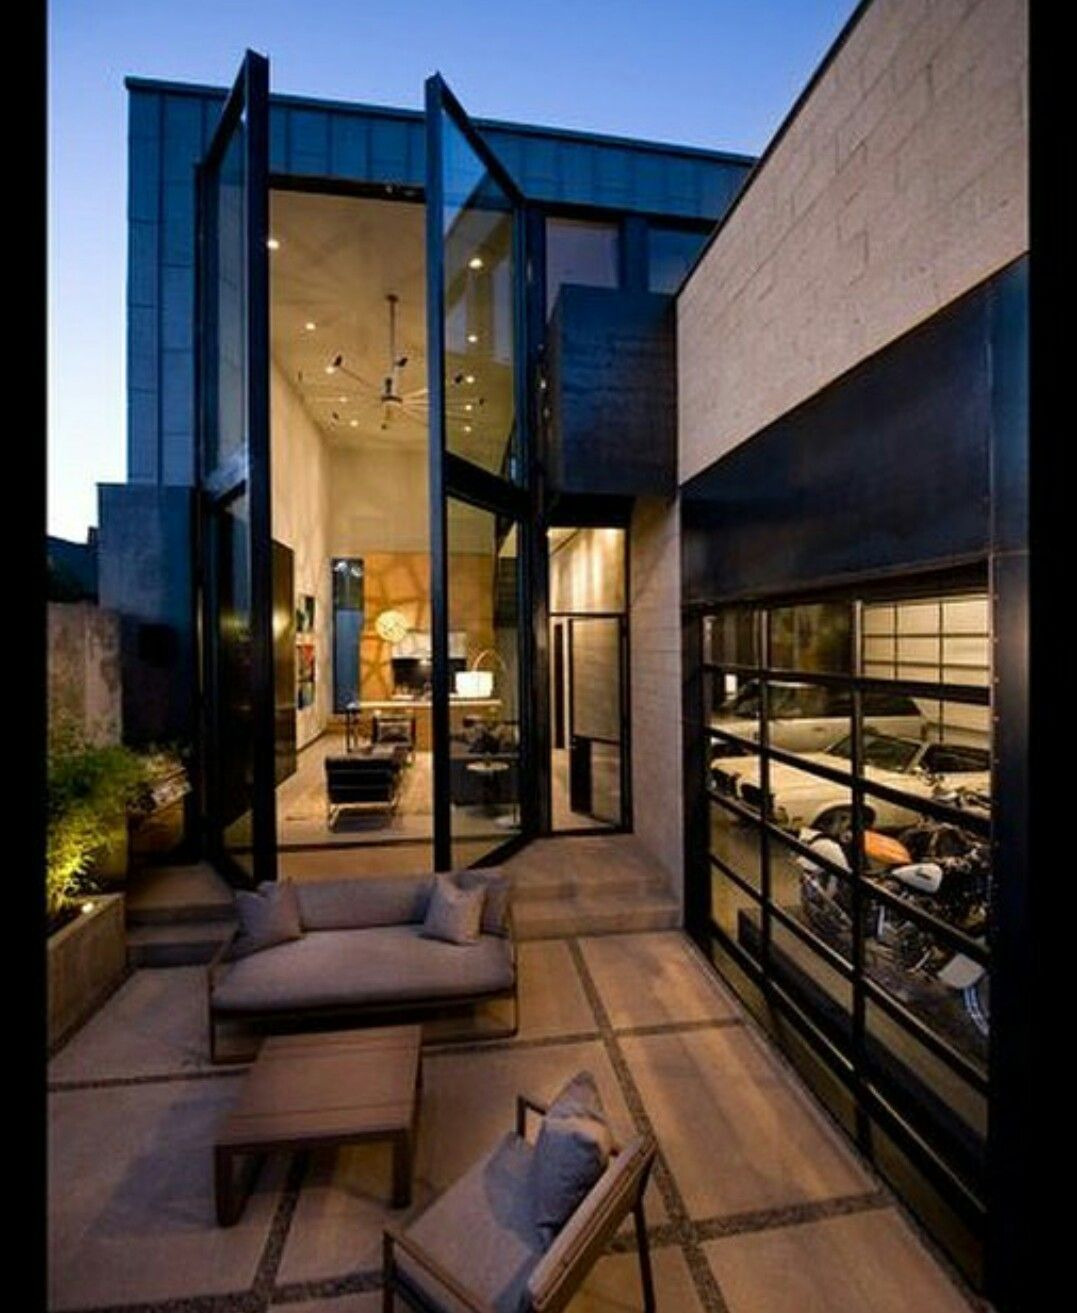 Love the big doors opening denver house tours architecture design house styles